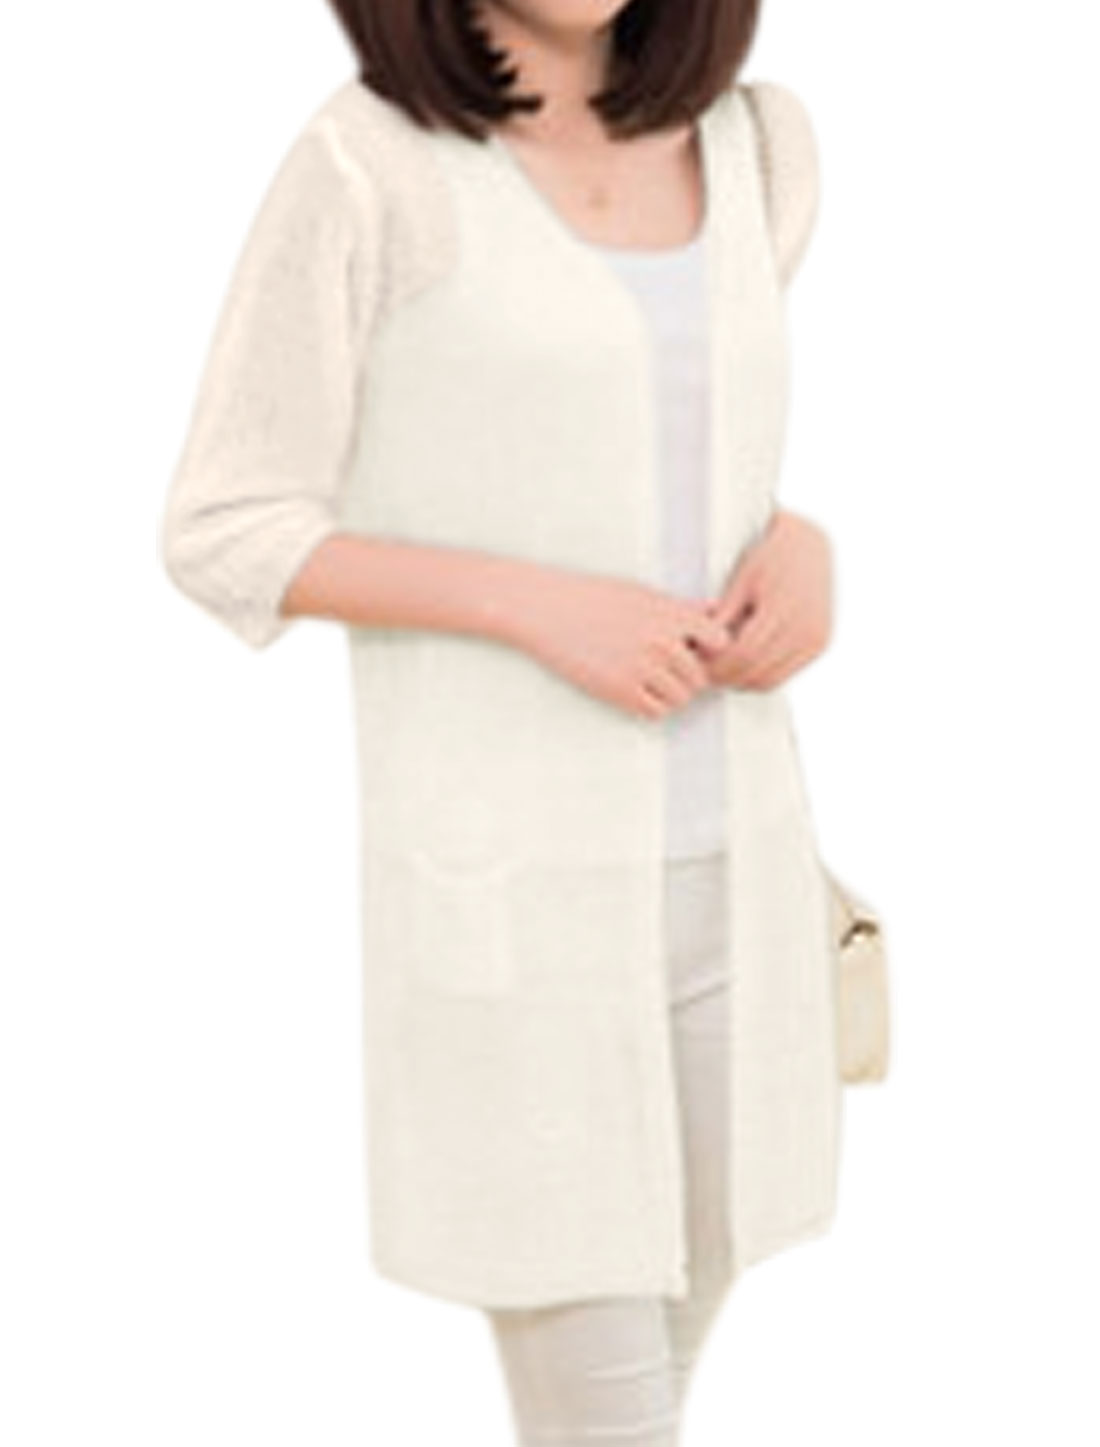 Two Pocket Opening Front Beige Tunic Knit Cardigan for Lady XS